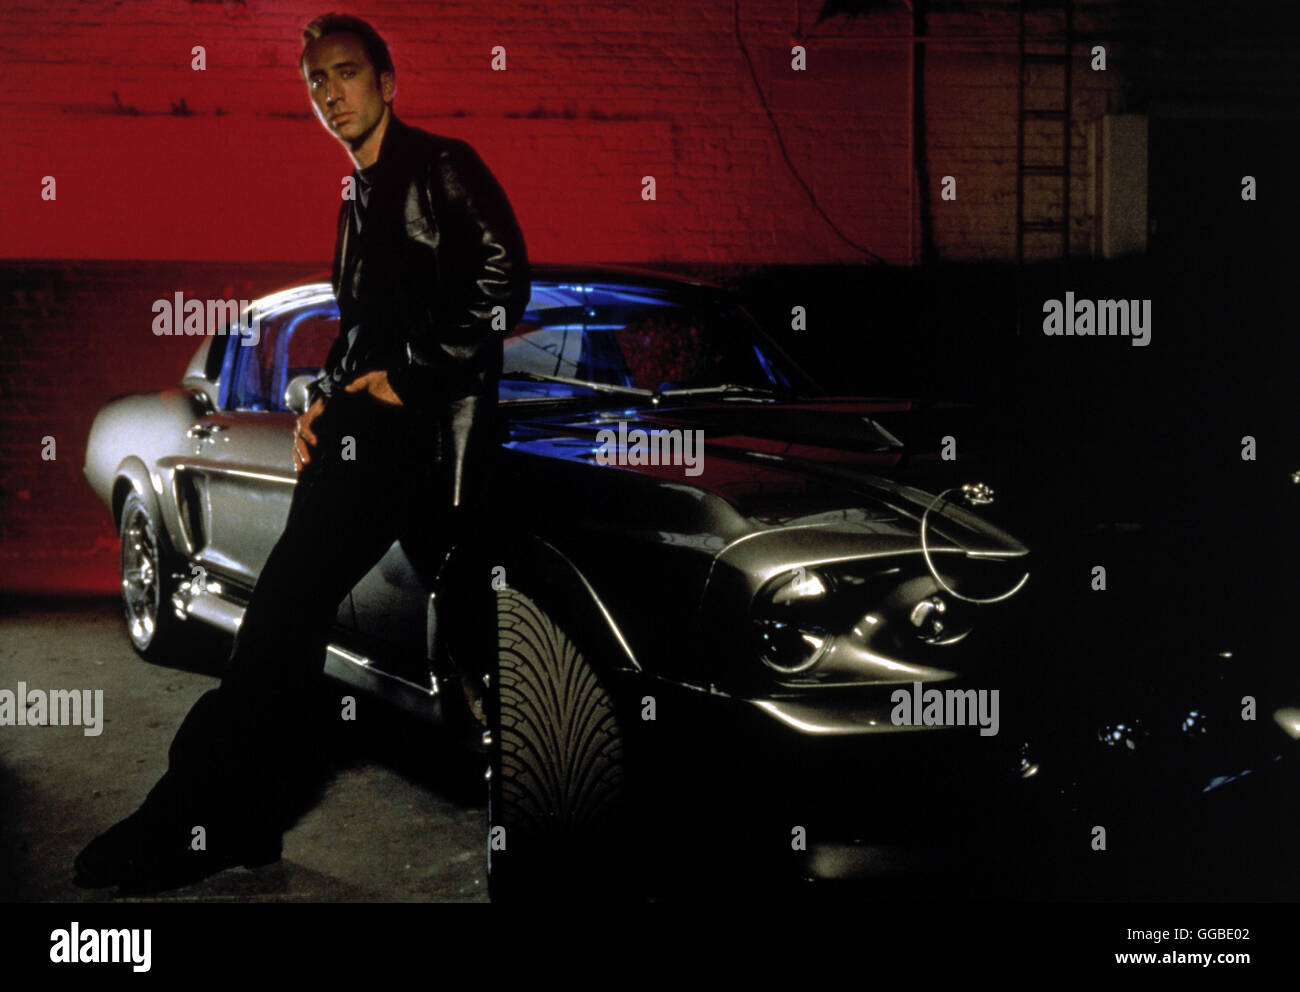 NUR NOCH 60 SEKUNDEN Gone in Sixty Seconds USA 2000 Dominic Sena Randall 'Memphis' Raines (NICOLAS CAGE) - Stock Image